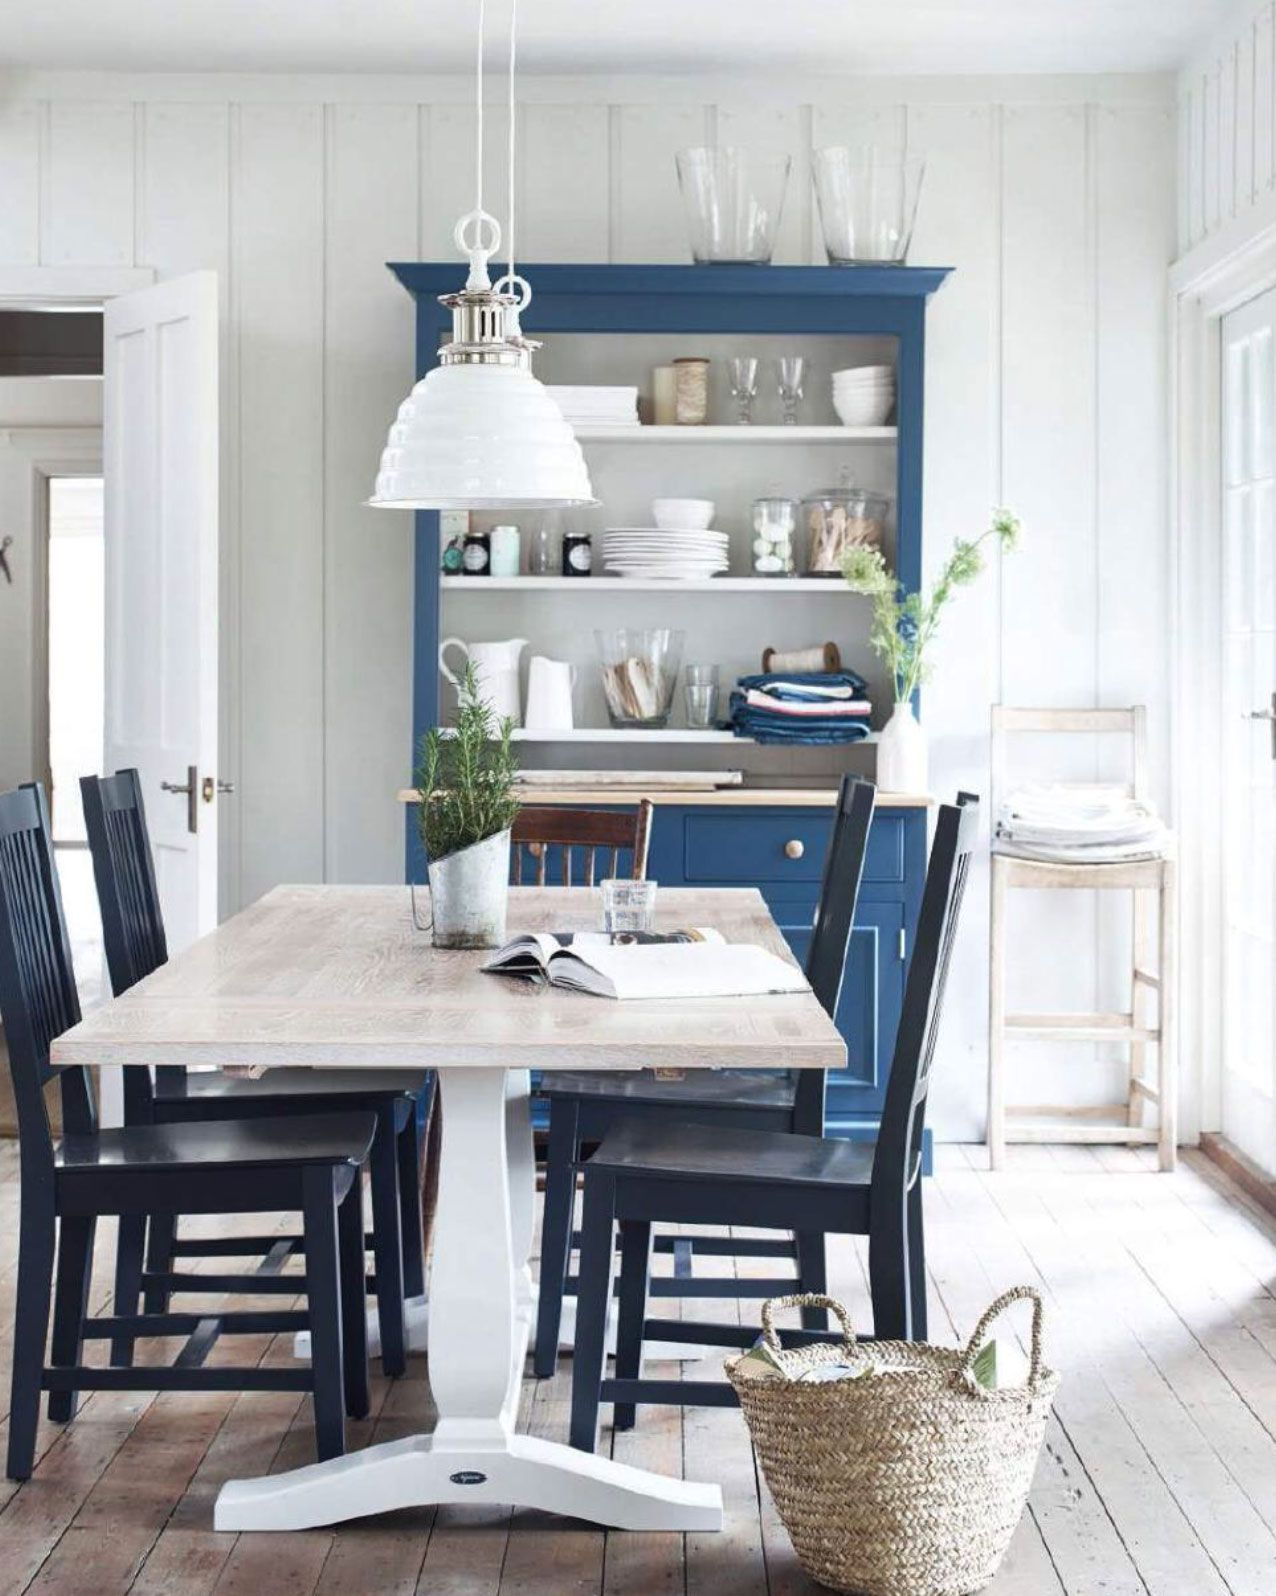 Charming White And Blue Country Dining Room. Bare Floorboards, White Painted Wood  Paneled Walls,